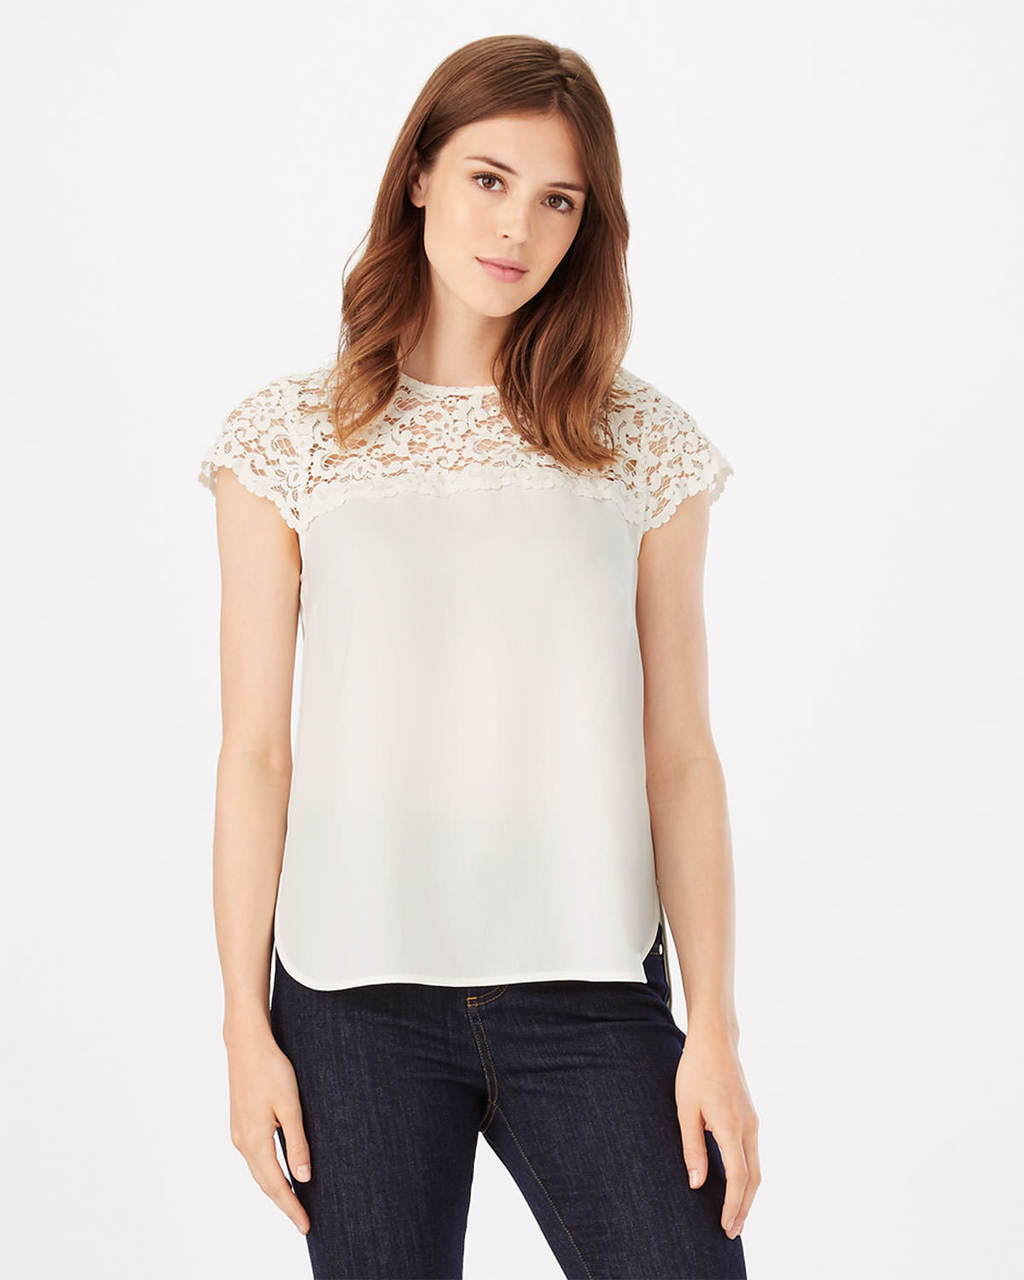 Lowri Lace Blouse - sleeve style: capped; pattern: plain; bust detail: sheer at bust; style: blouse; predominant colour: ivory/cream; occasions: casual; length: standard; fibres: polyester/polyamide - 100%; fit: body skimming; neckline: crew; sleeve length: short sleeve; pattern type: fabric; texture group: other - light to midweight; embellishment: lace; season: s/s 2016